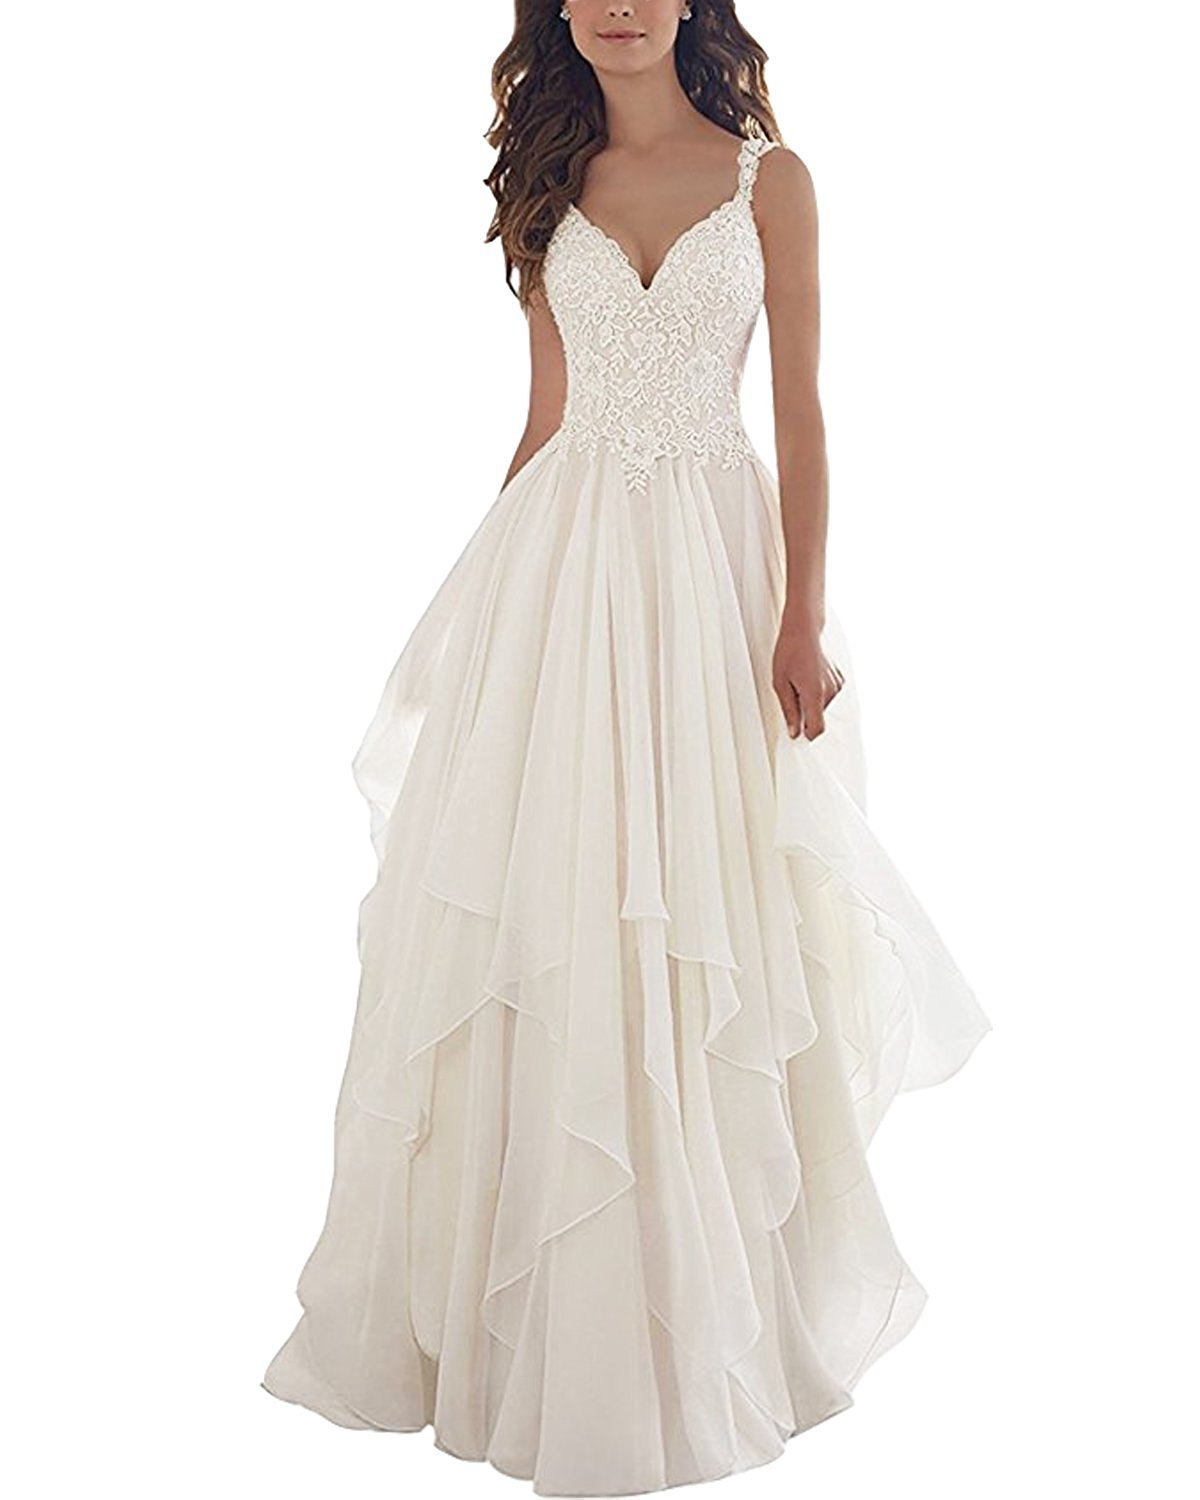 Kevins Bridal Lace V Neck Wedding Dress Illusion Chiffon Beach Wedding Gown Straps White Size 6